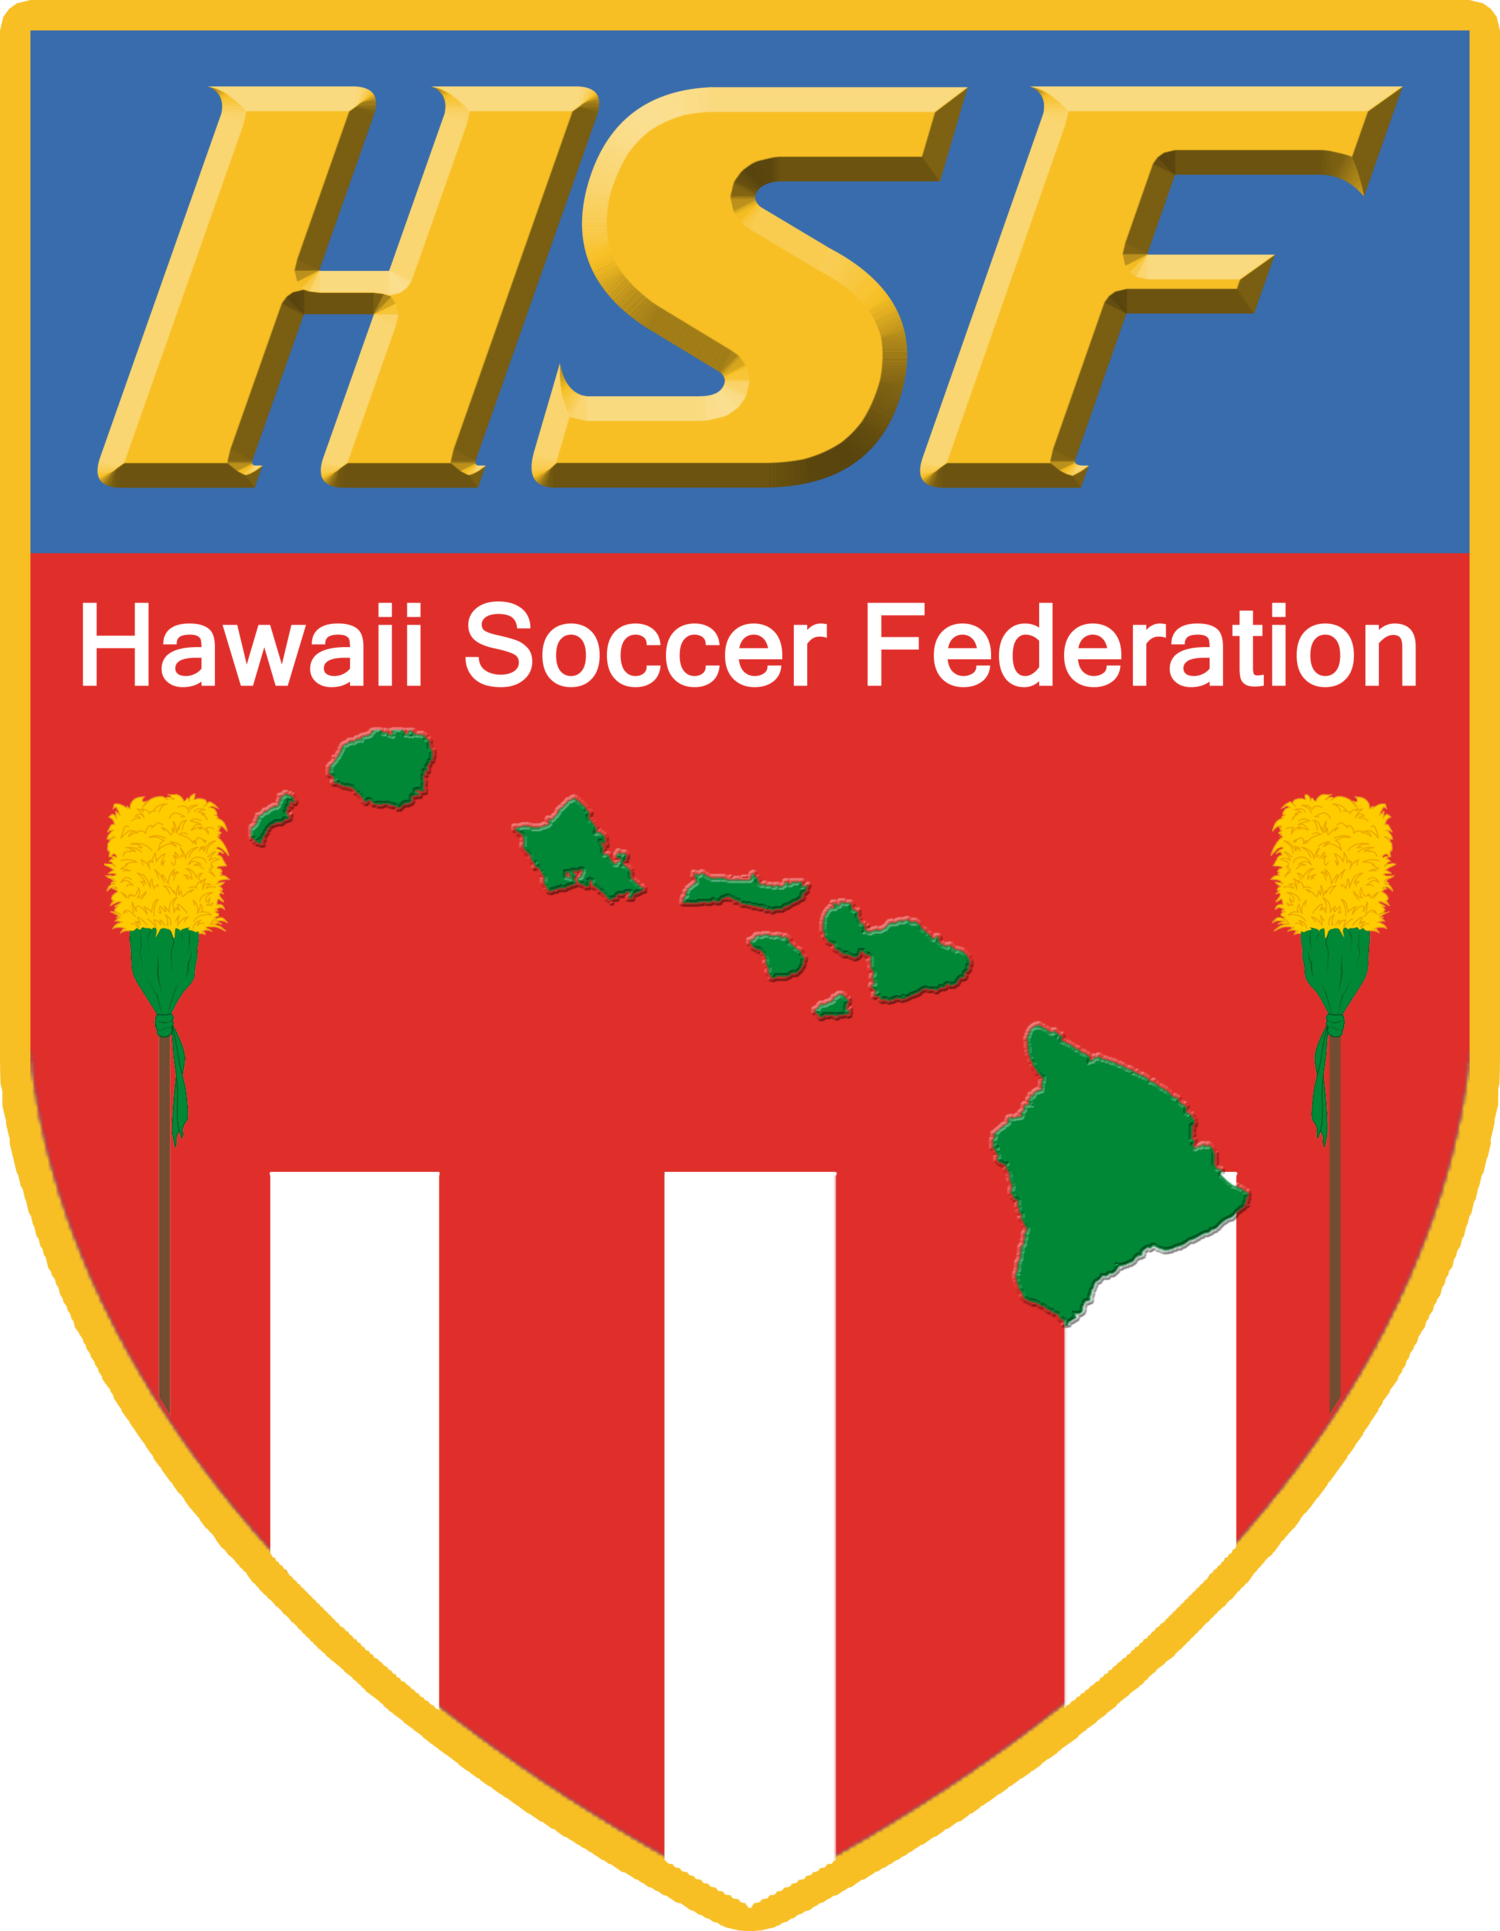 Hawaii Soccer Federation